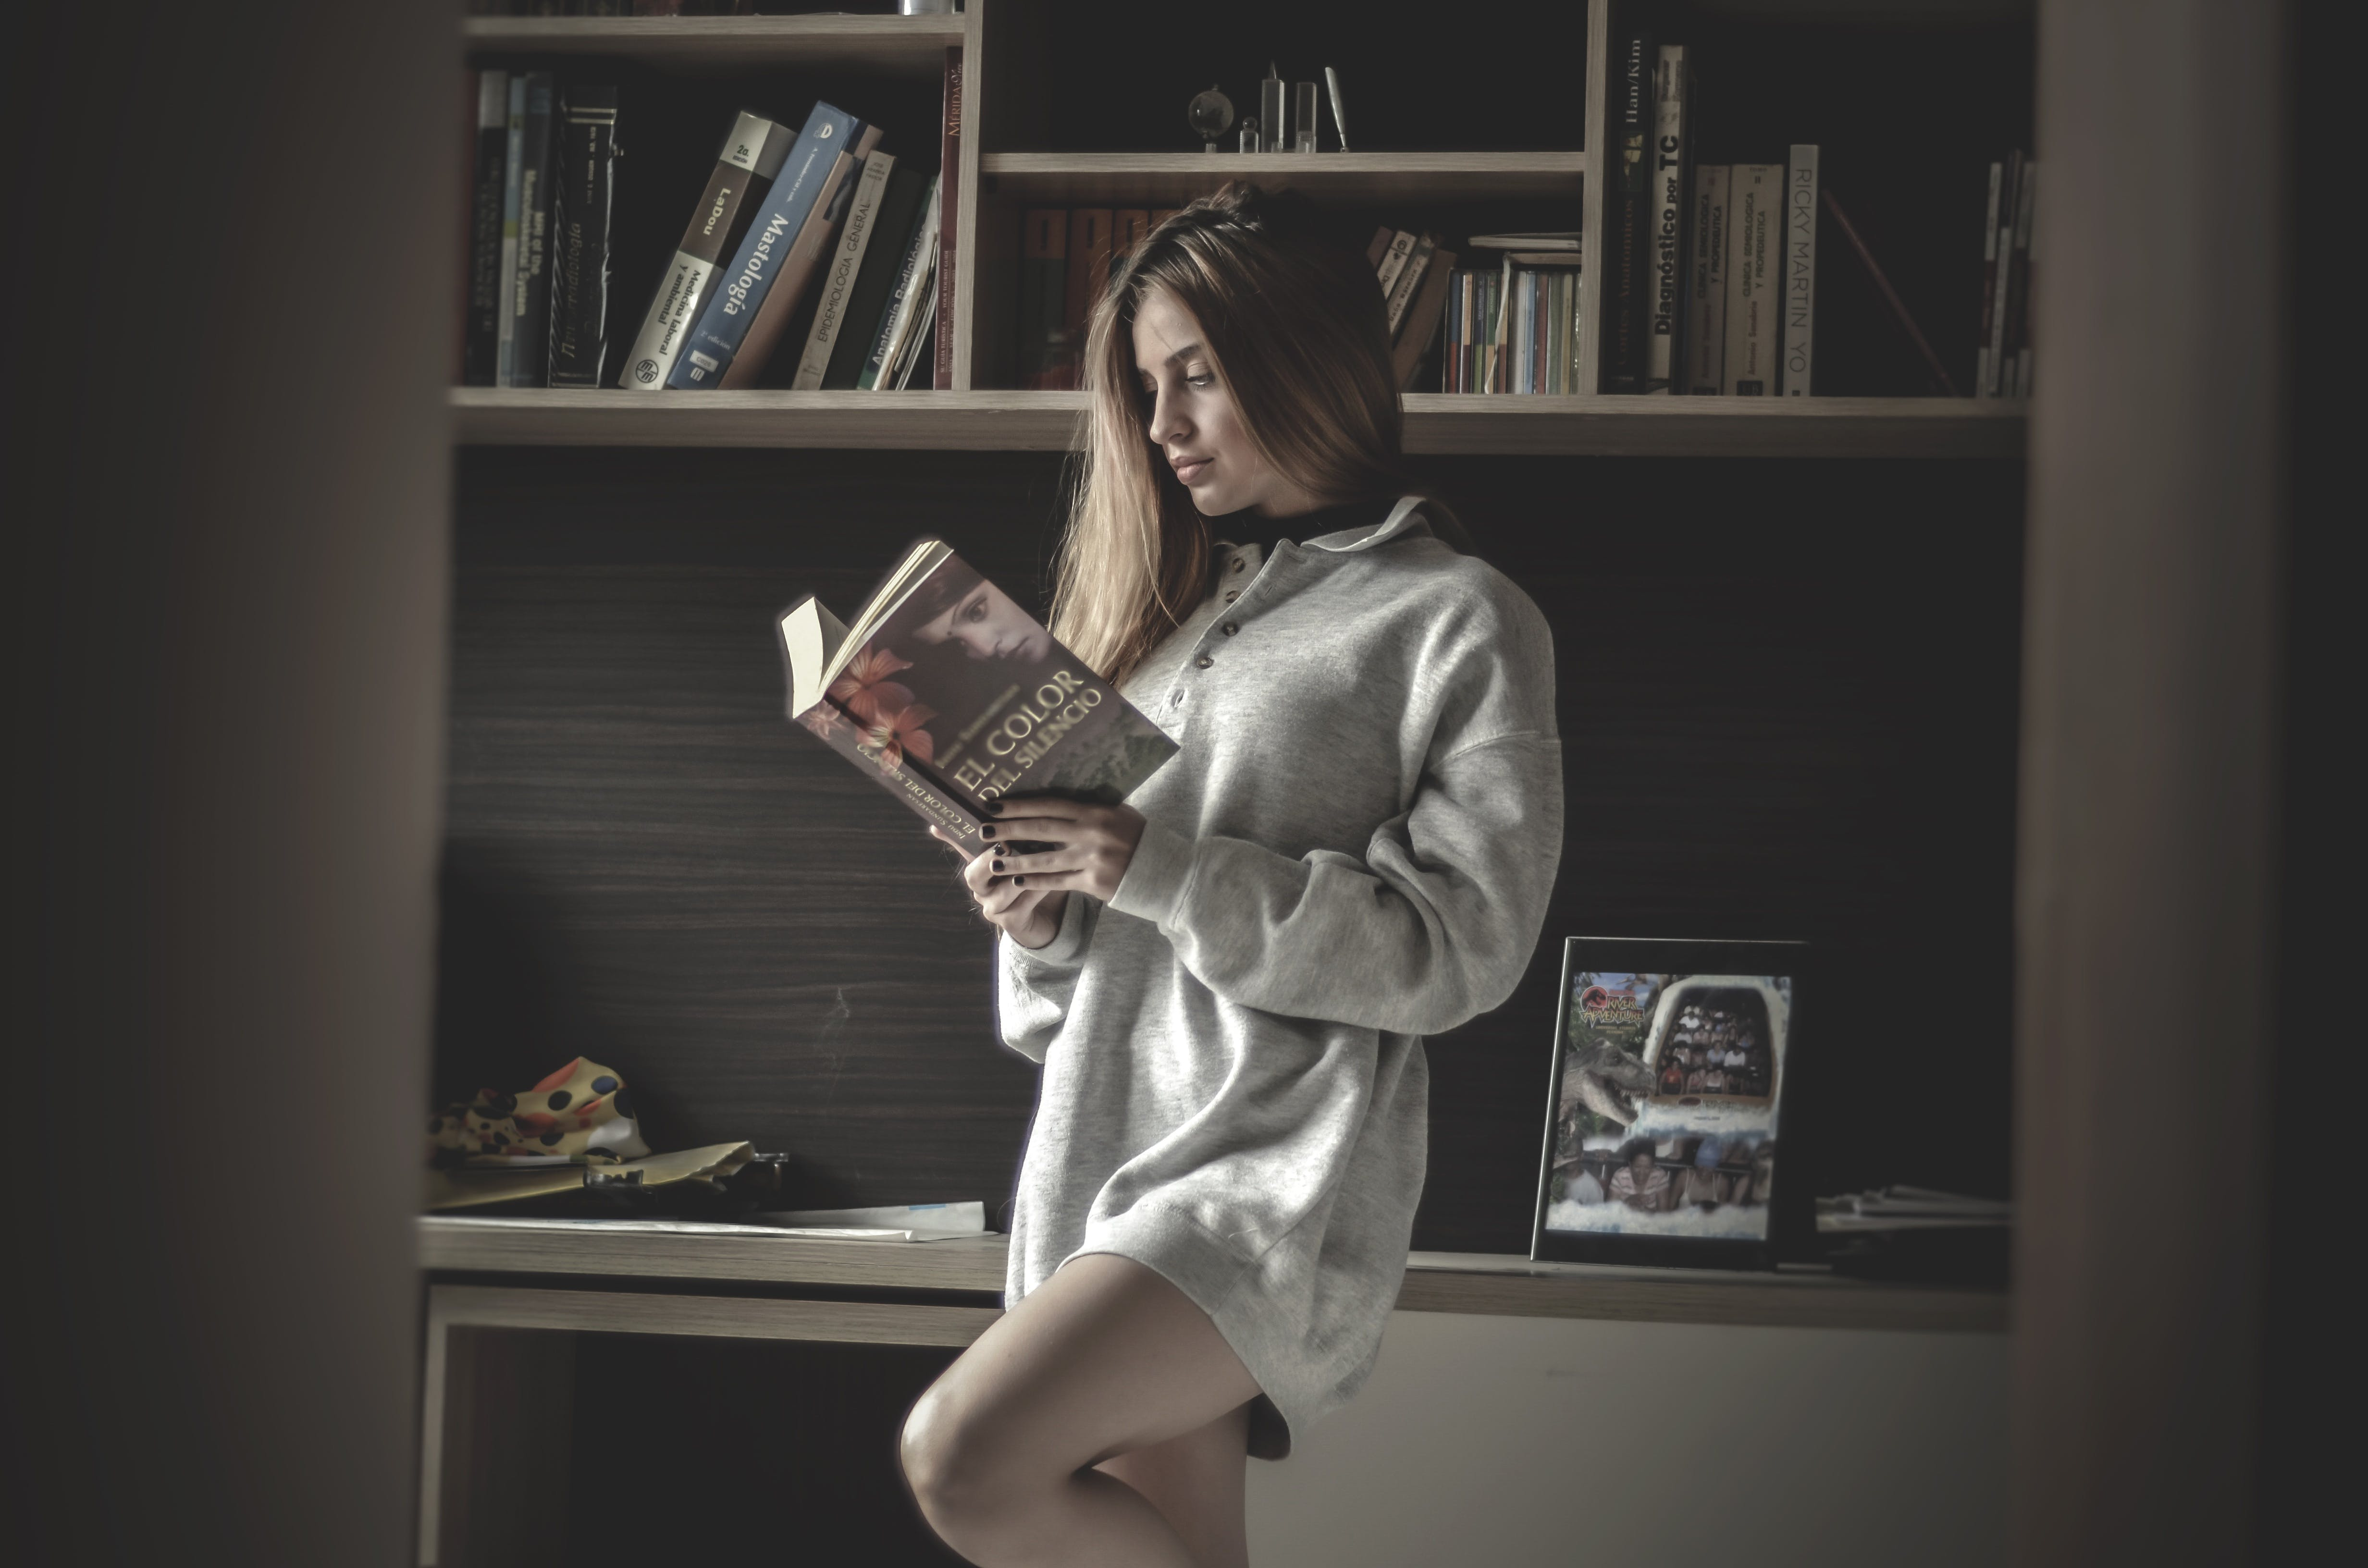 Woman Standing Reading Book